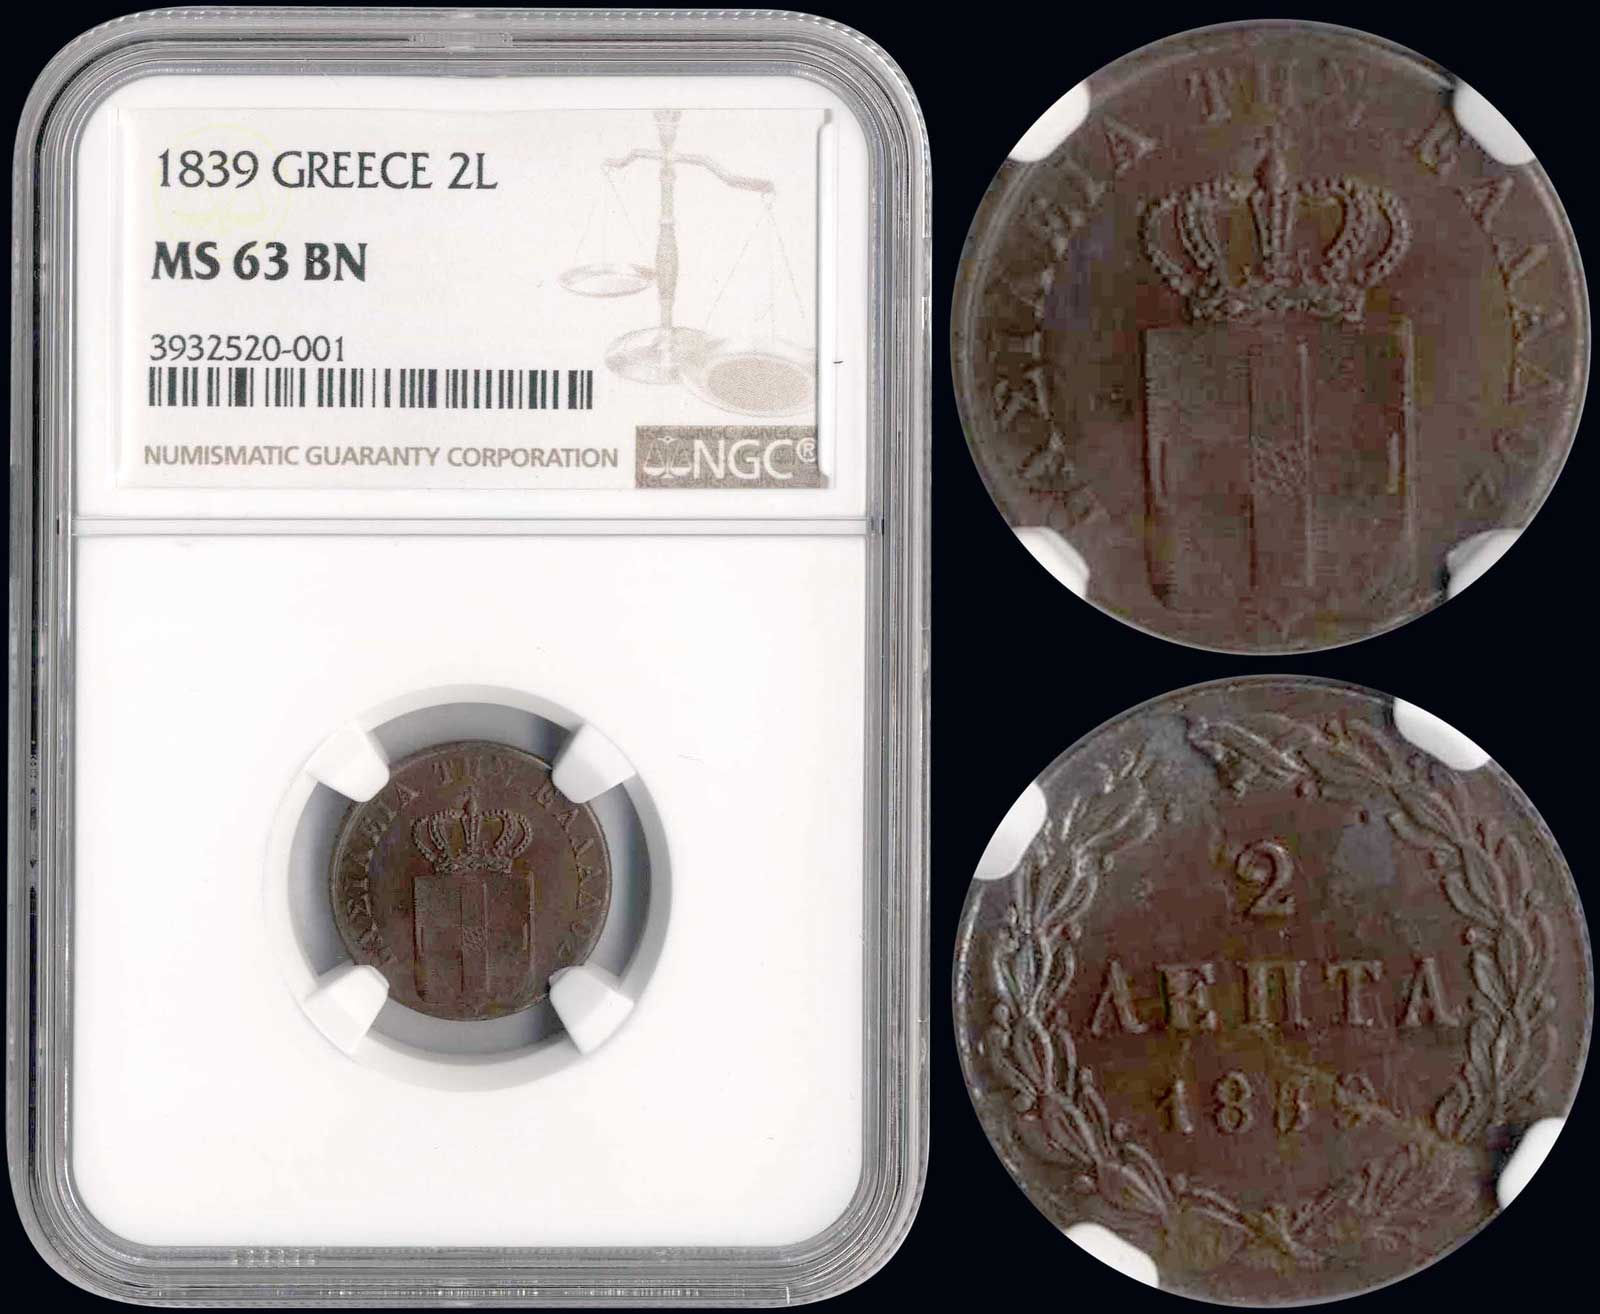 Lot 9062 - GREECE-  COINS & TOKENS king otto -  A. Karamitsos Public & LIVE Bid Auction 610 Coins, Medals & Banknotes